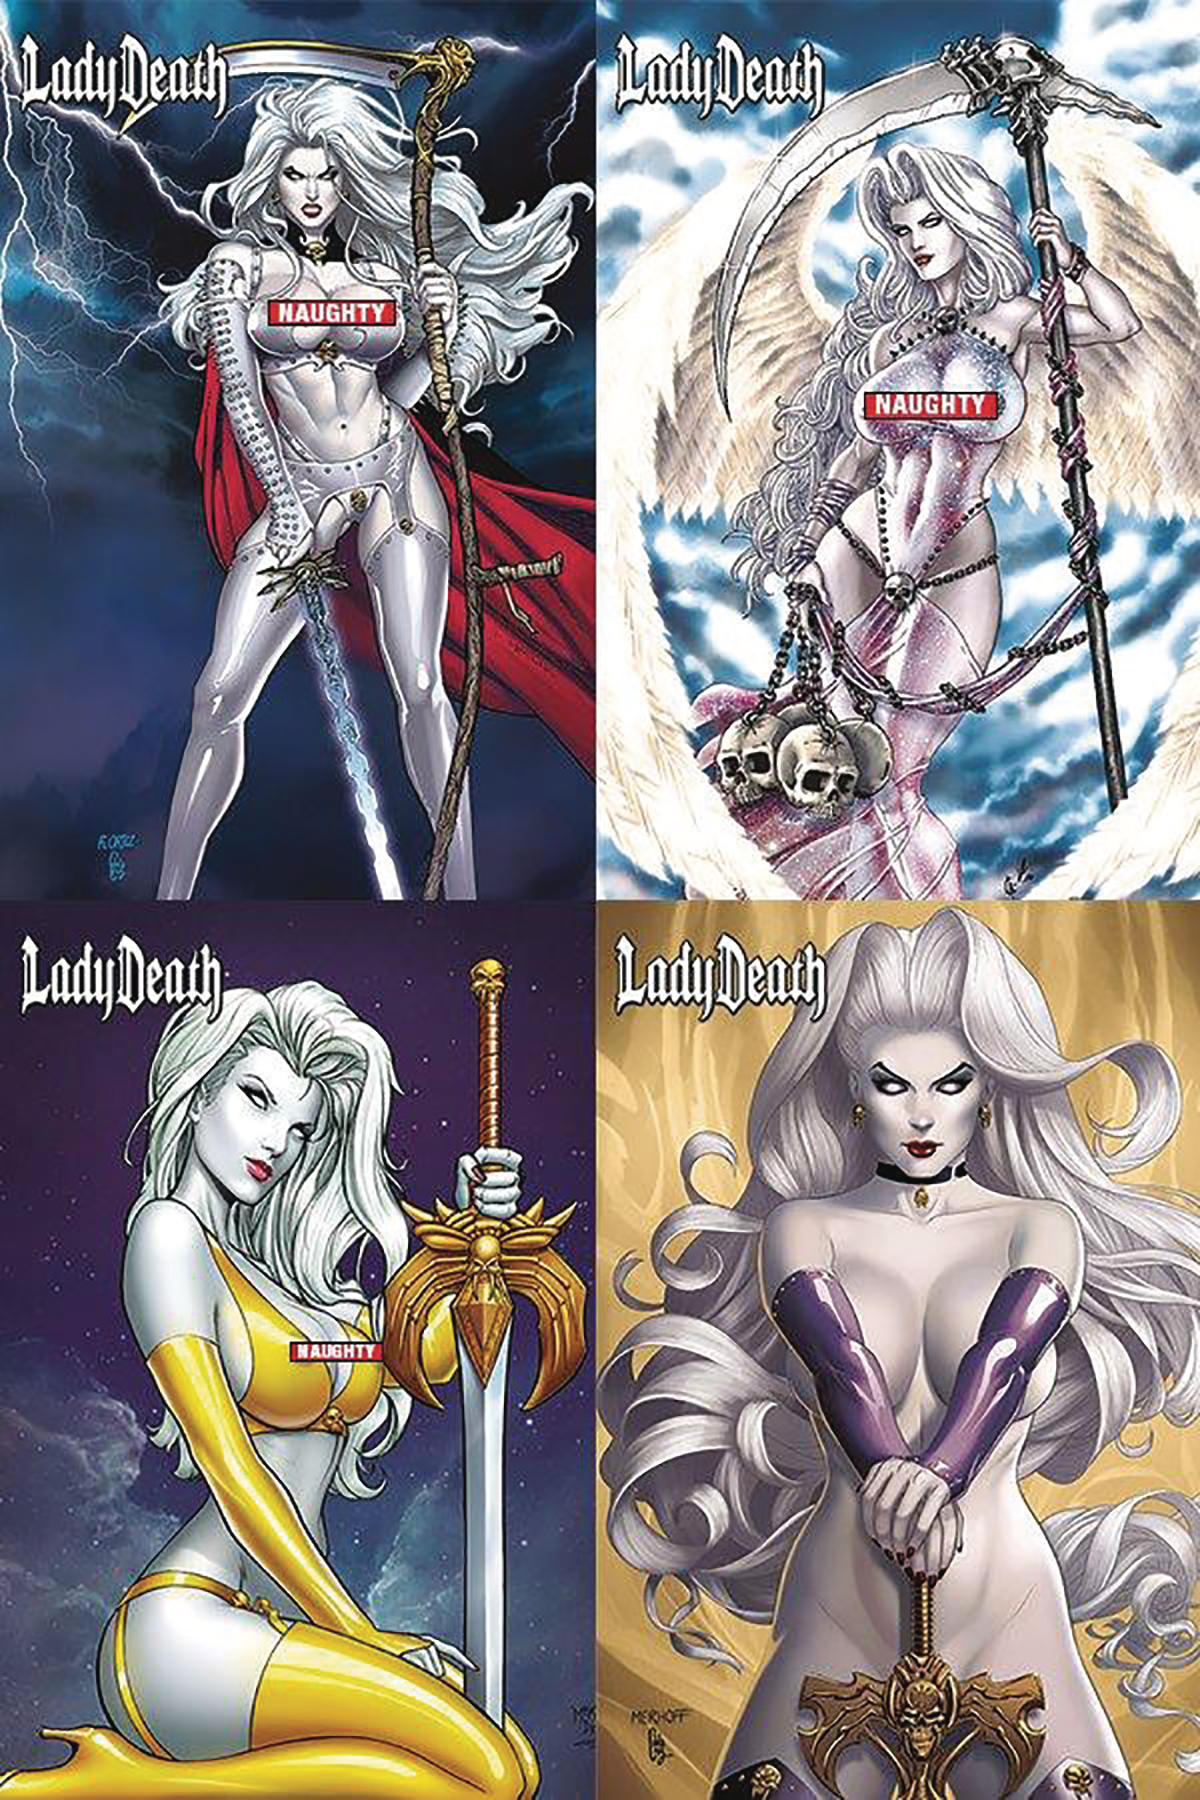 oct171407 lady death naughty gift box mr previews world